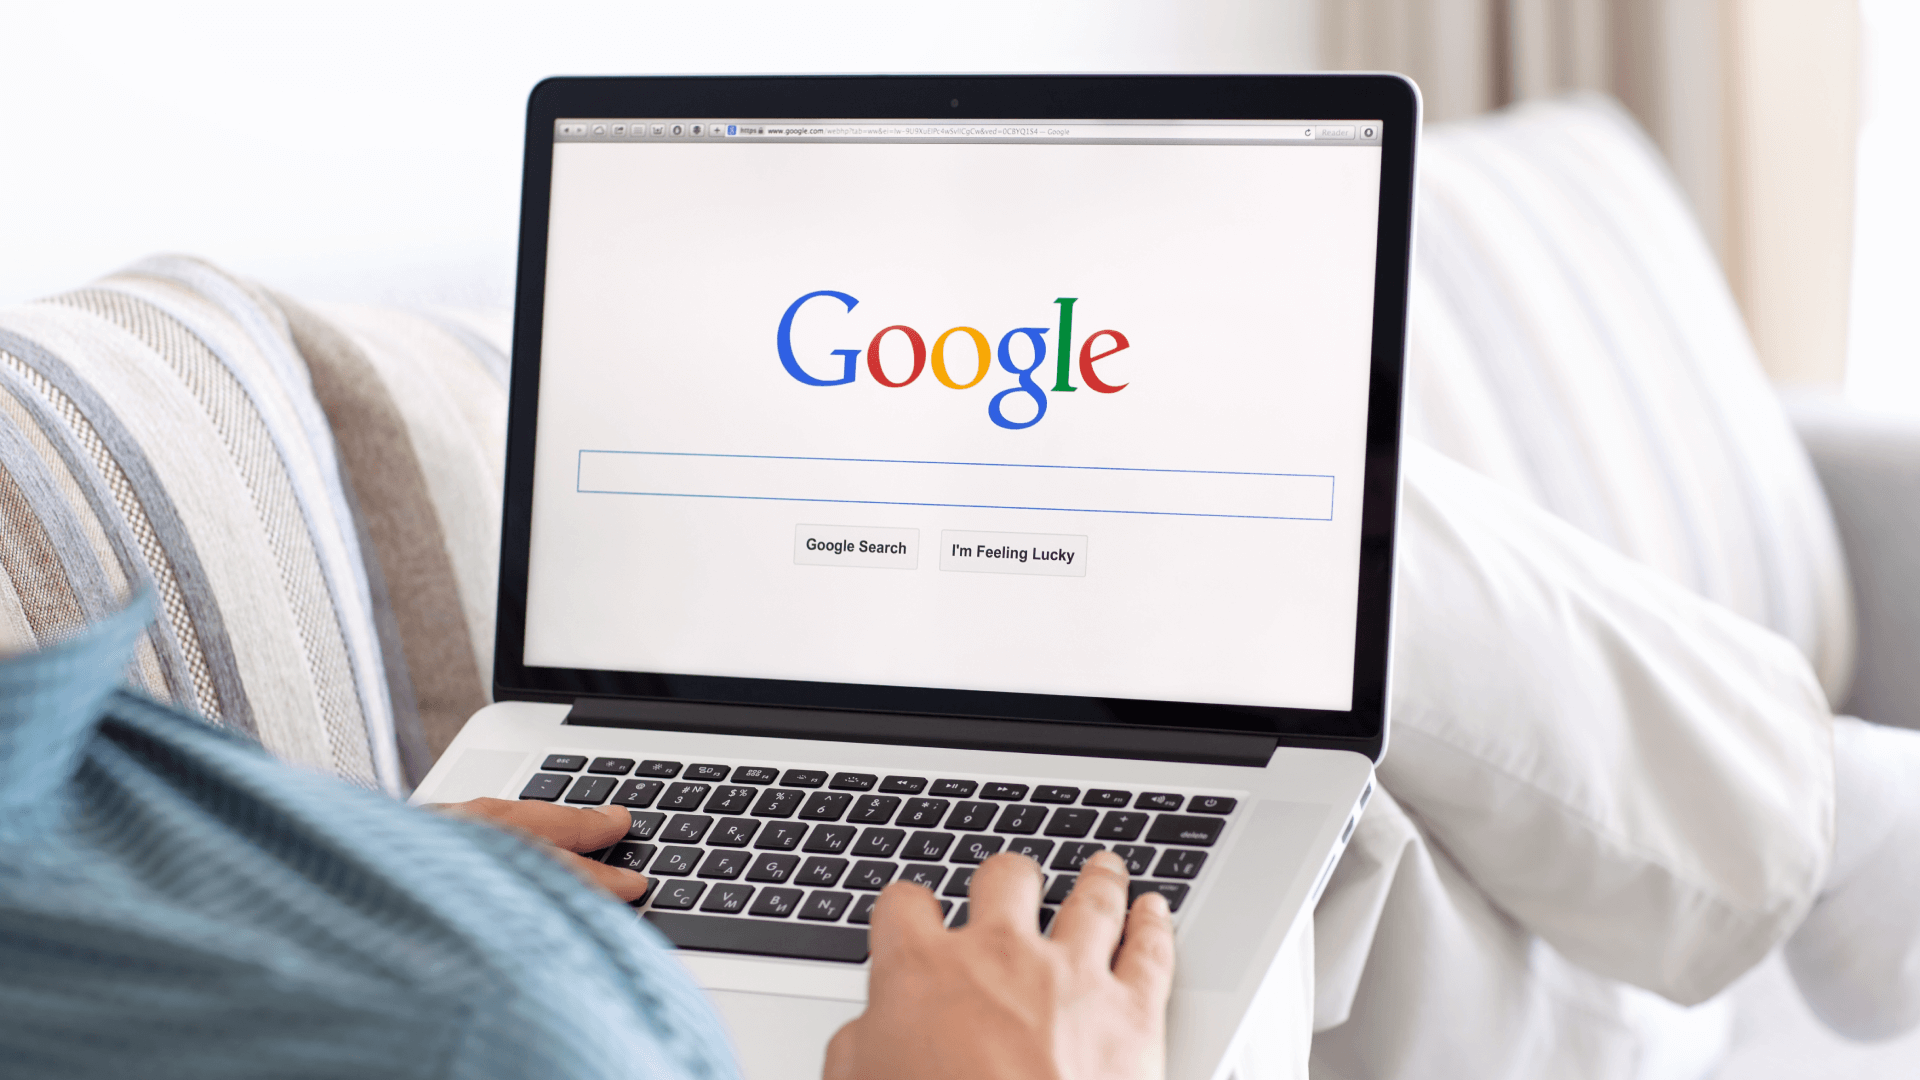 7 Reasons Your Small Business Should Invest in Search Engine Optimization (SEO)